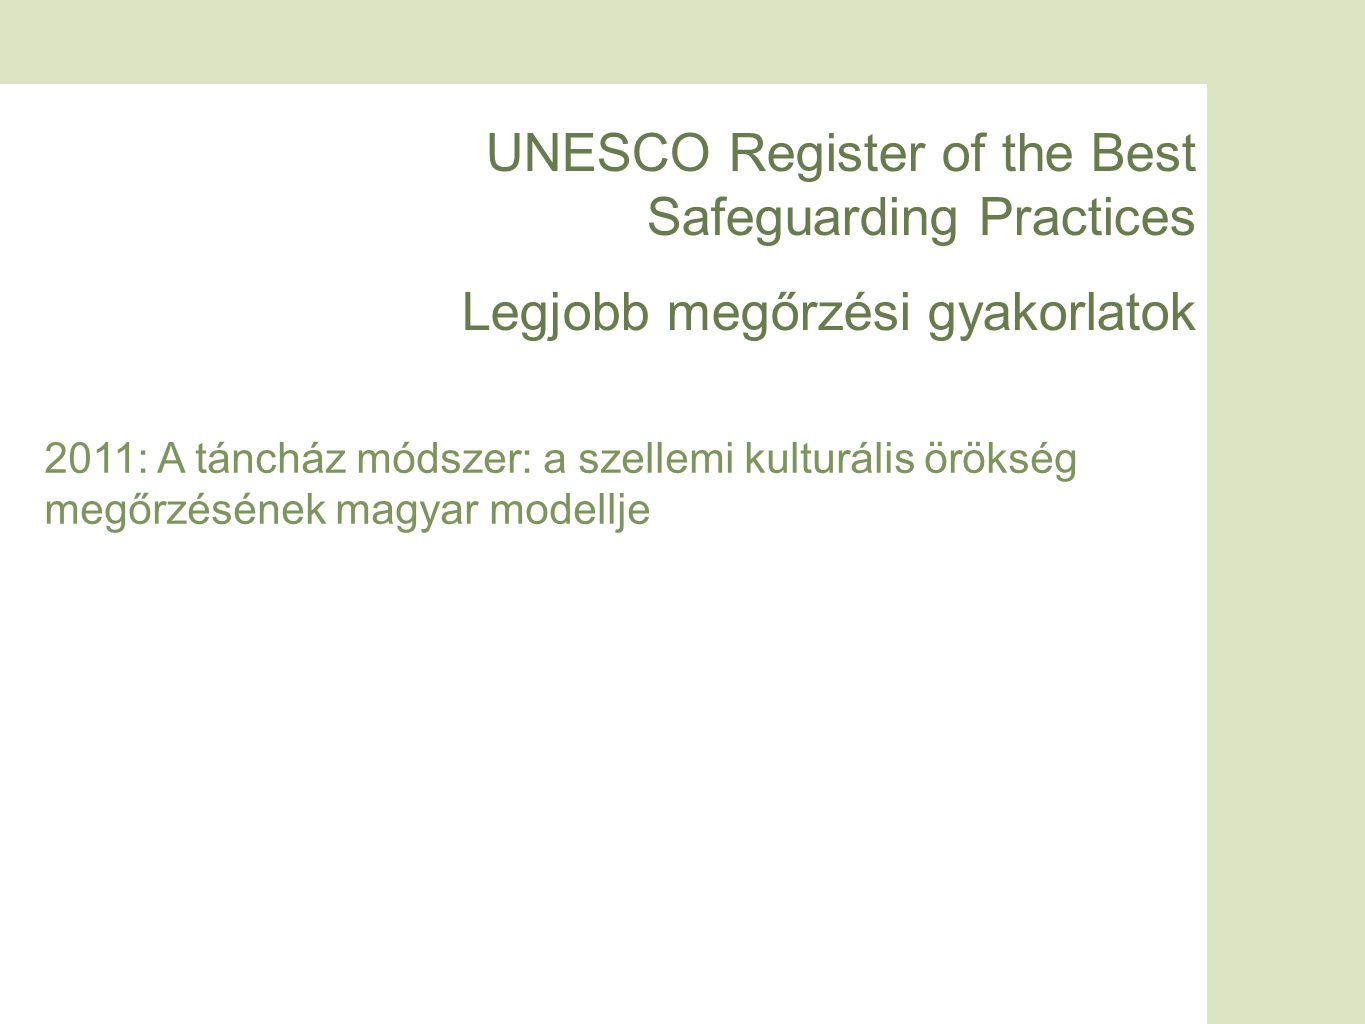 UNESCO Register of the Best Safeguarding Practices